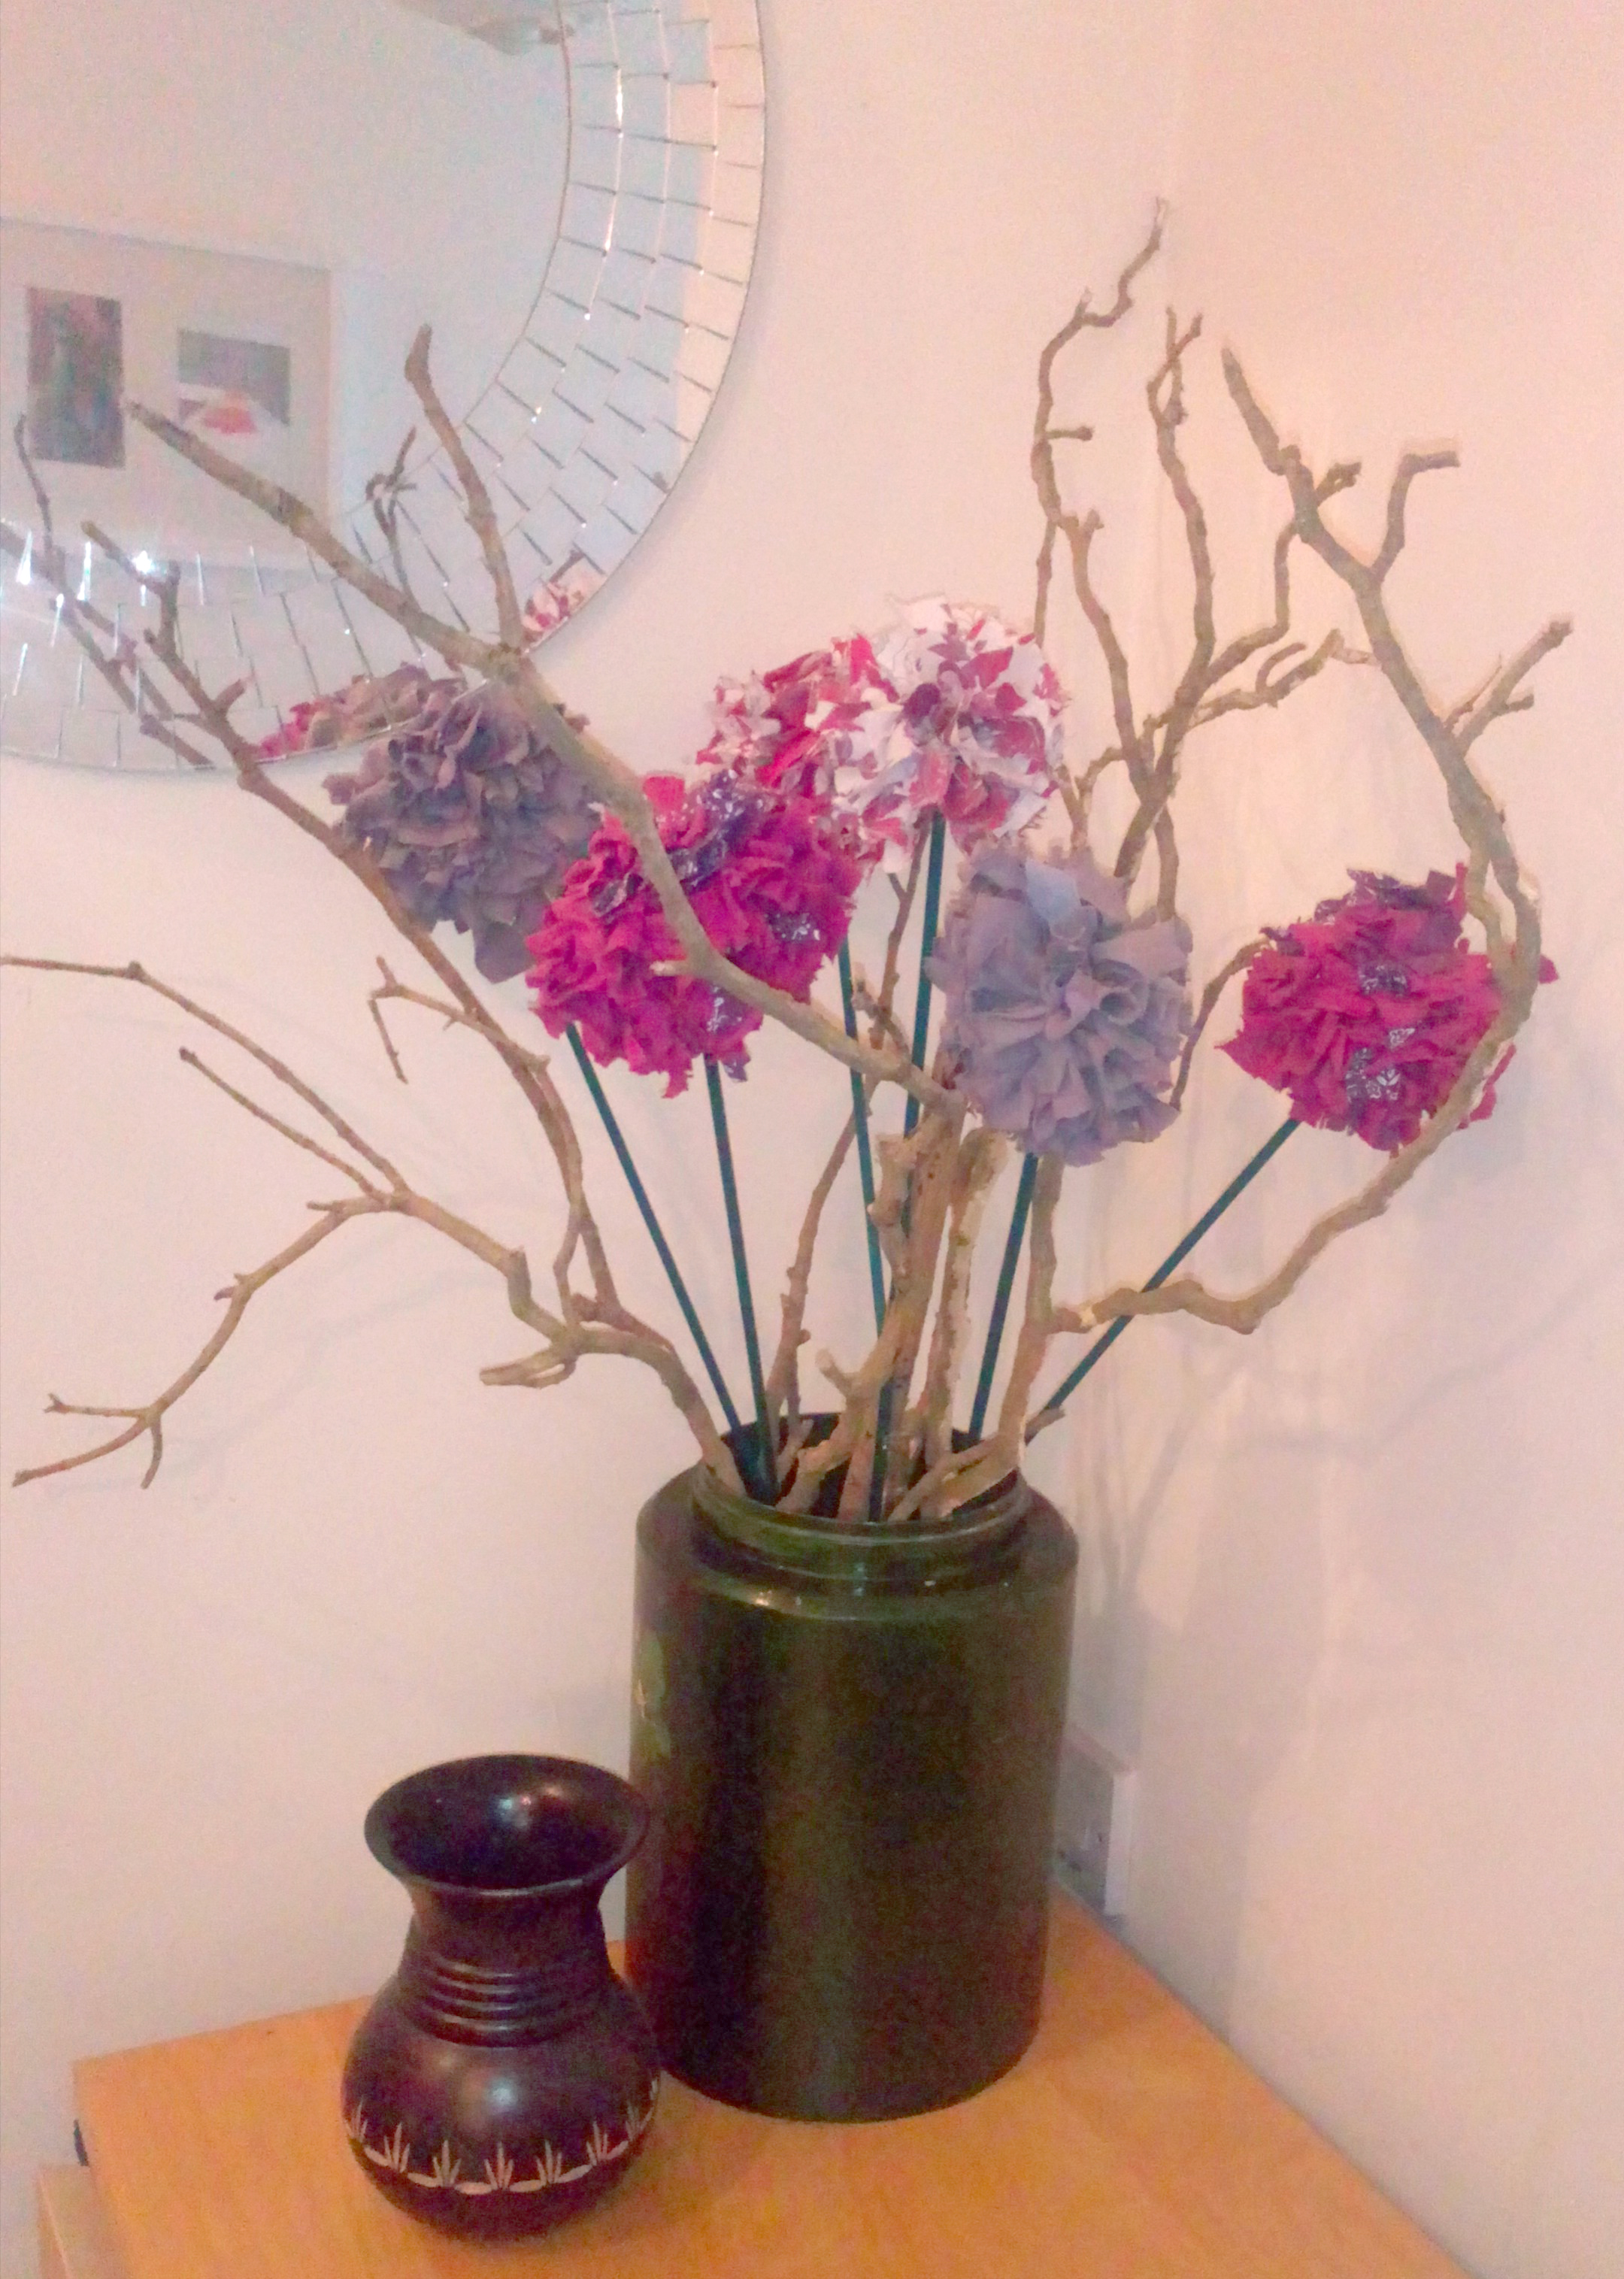 Pink fabric flowers in a green vase with wooden twigs